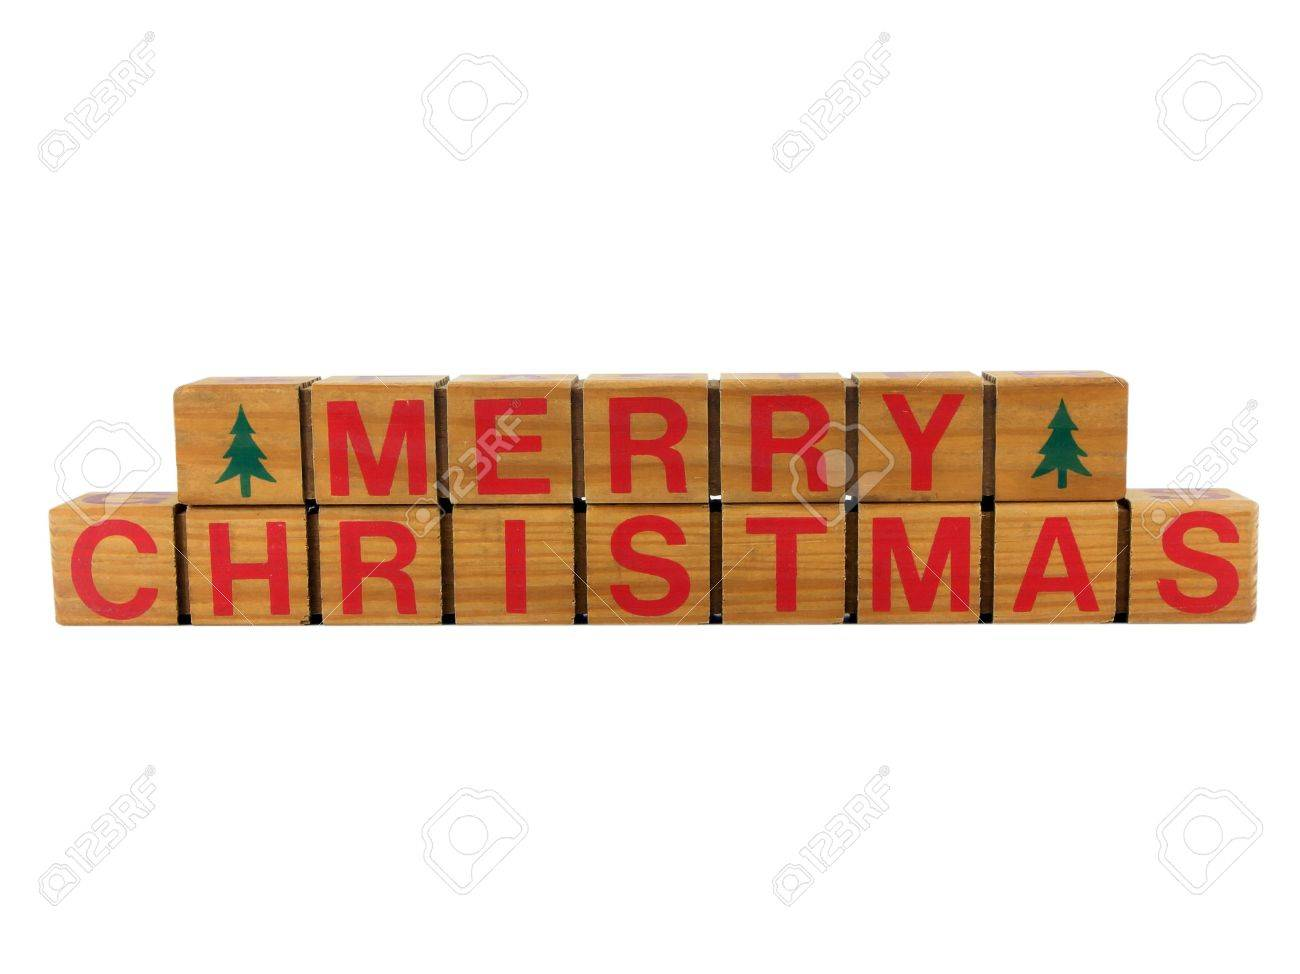 Photo Of The Words Merry Christmas Spelled Out On Wooden Blocks ...